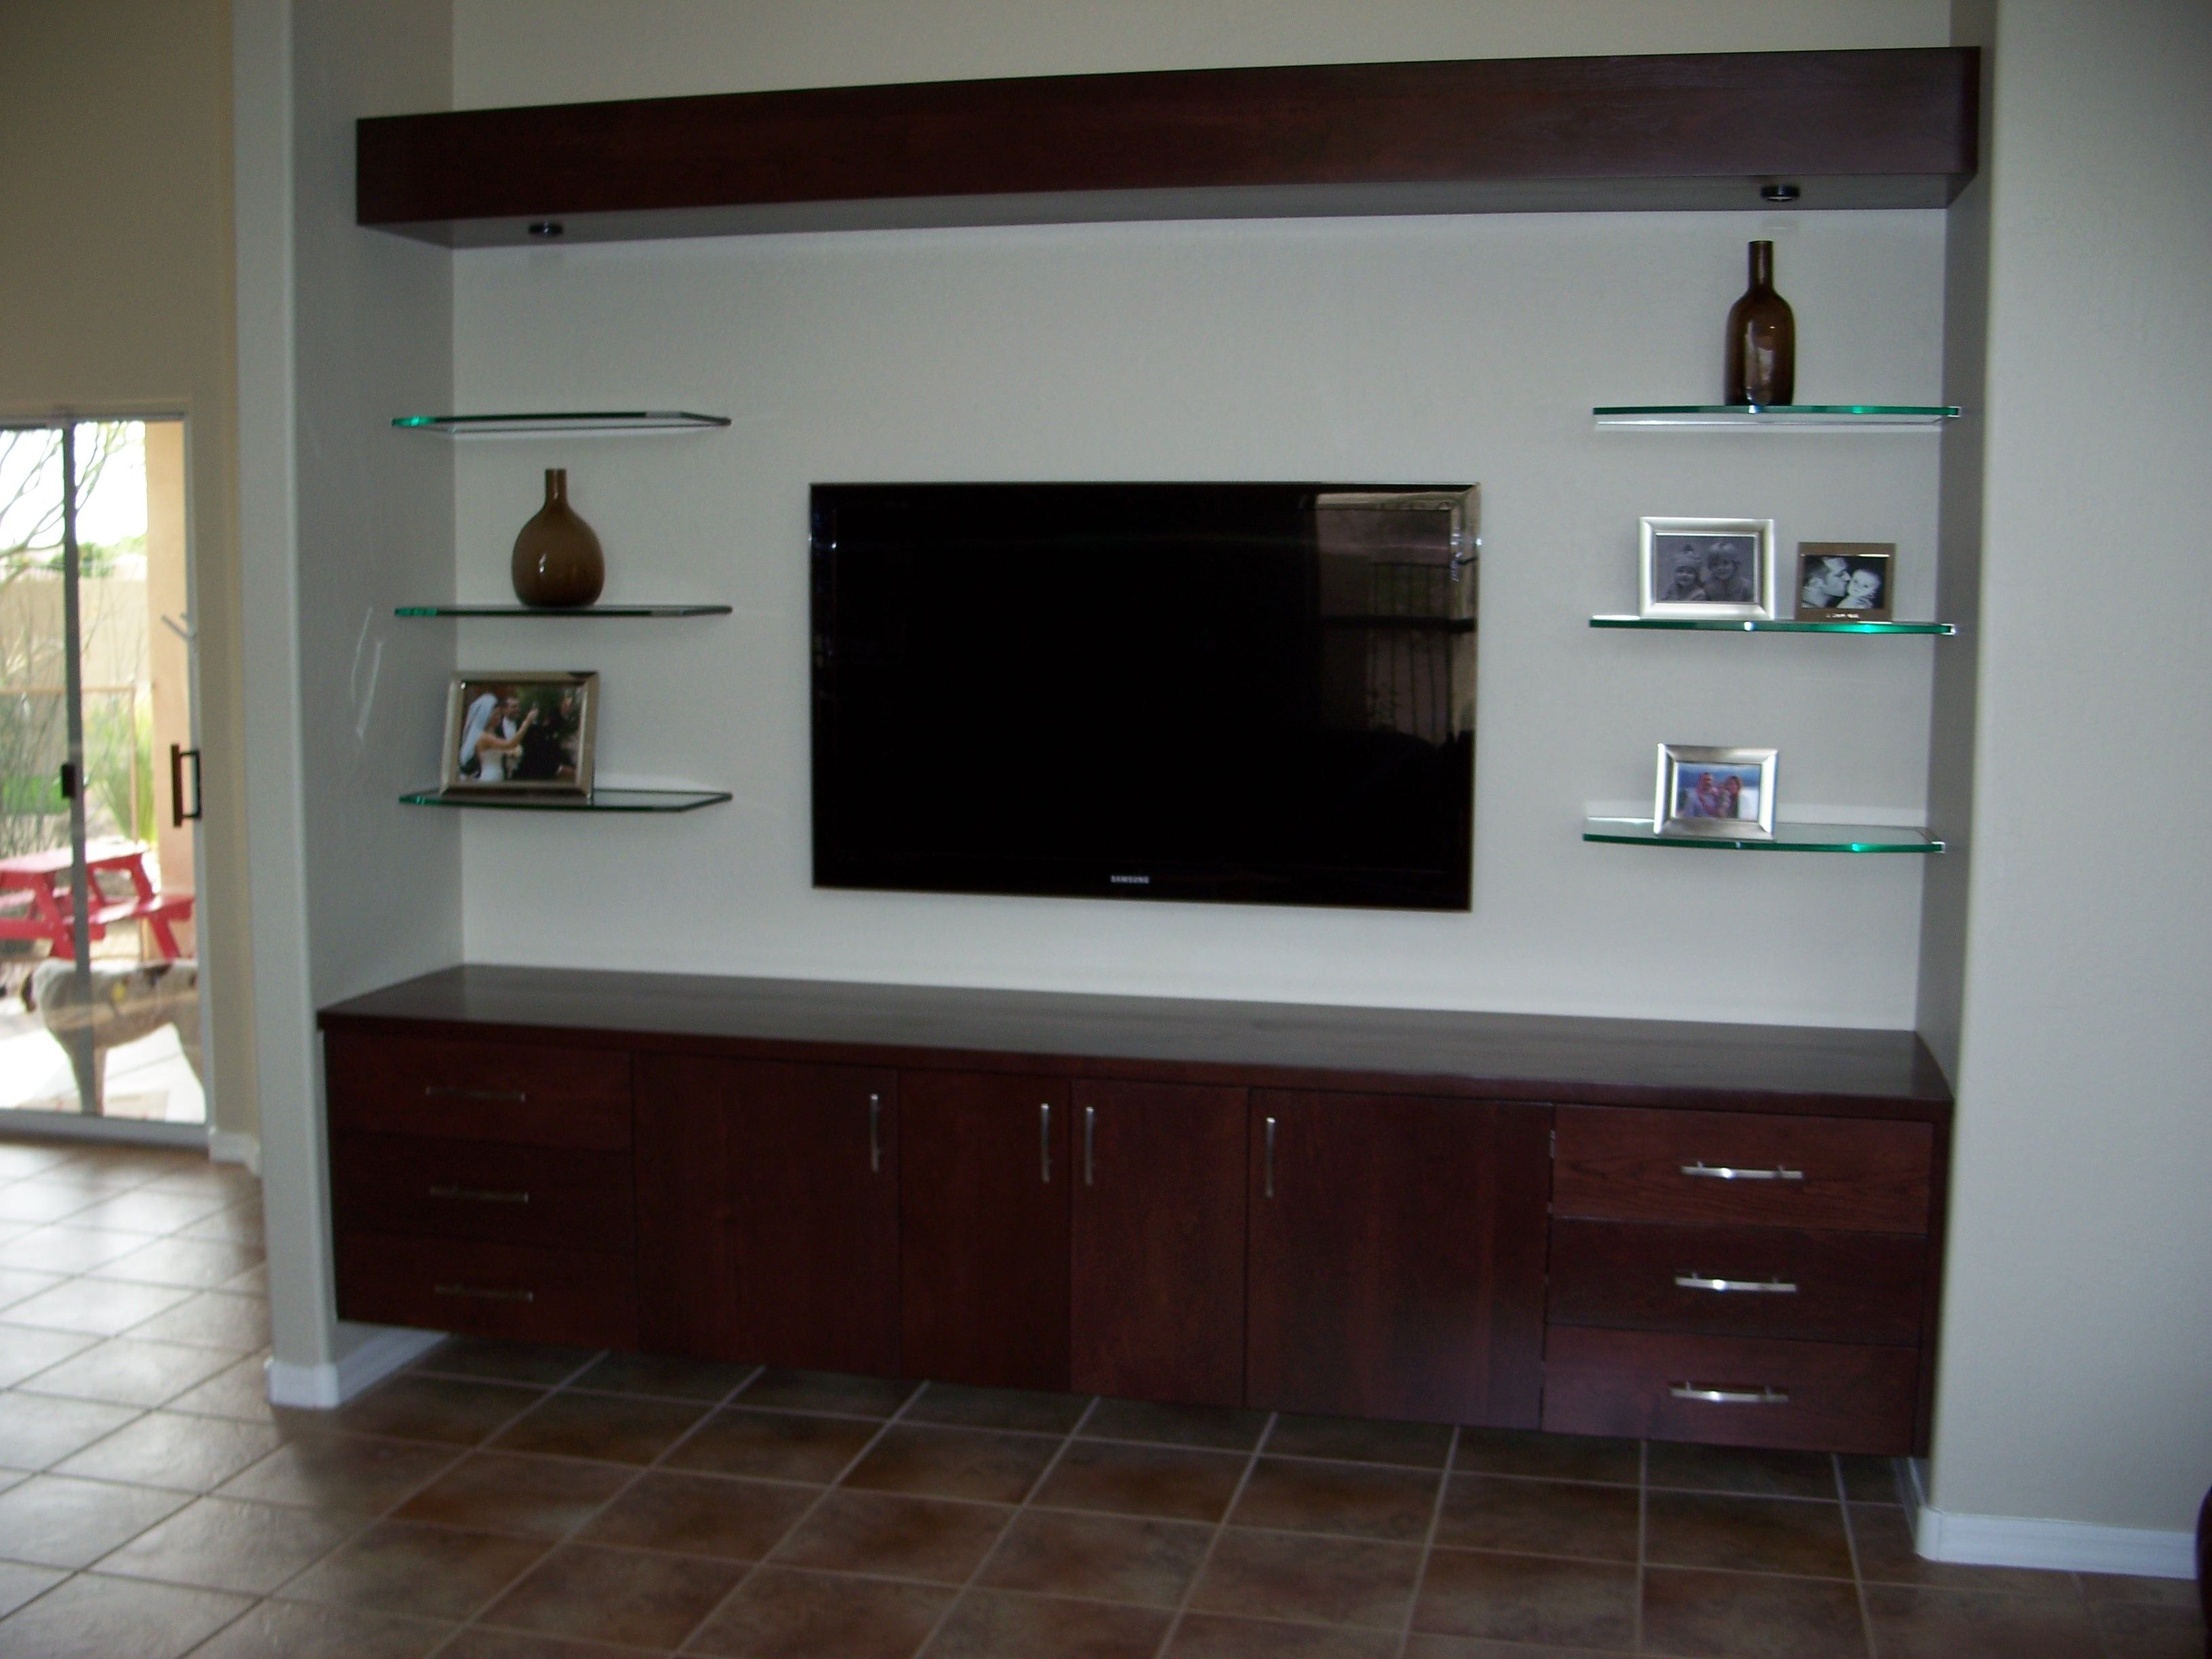 Superieur Simple Wall Mounted Tv Unit Designs. Decoration Minimalist Living .